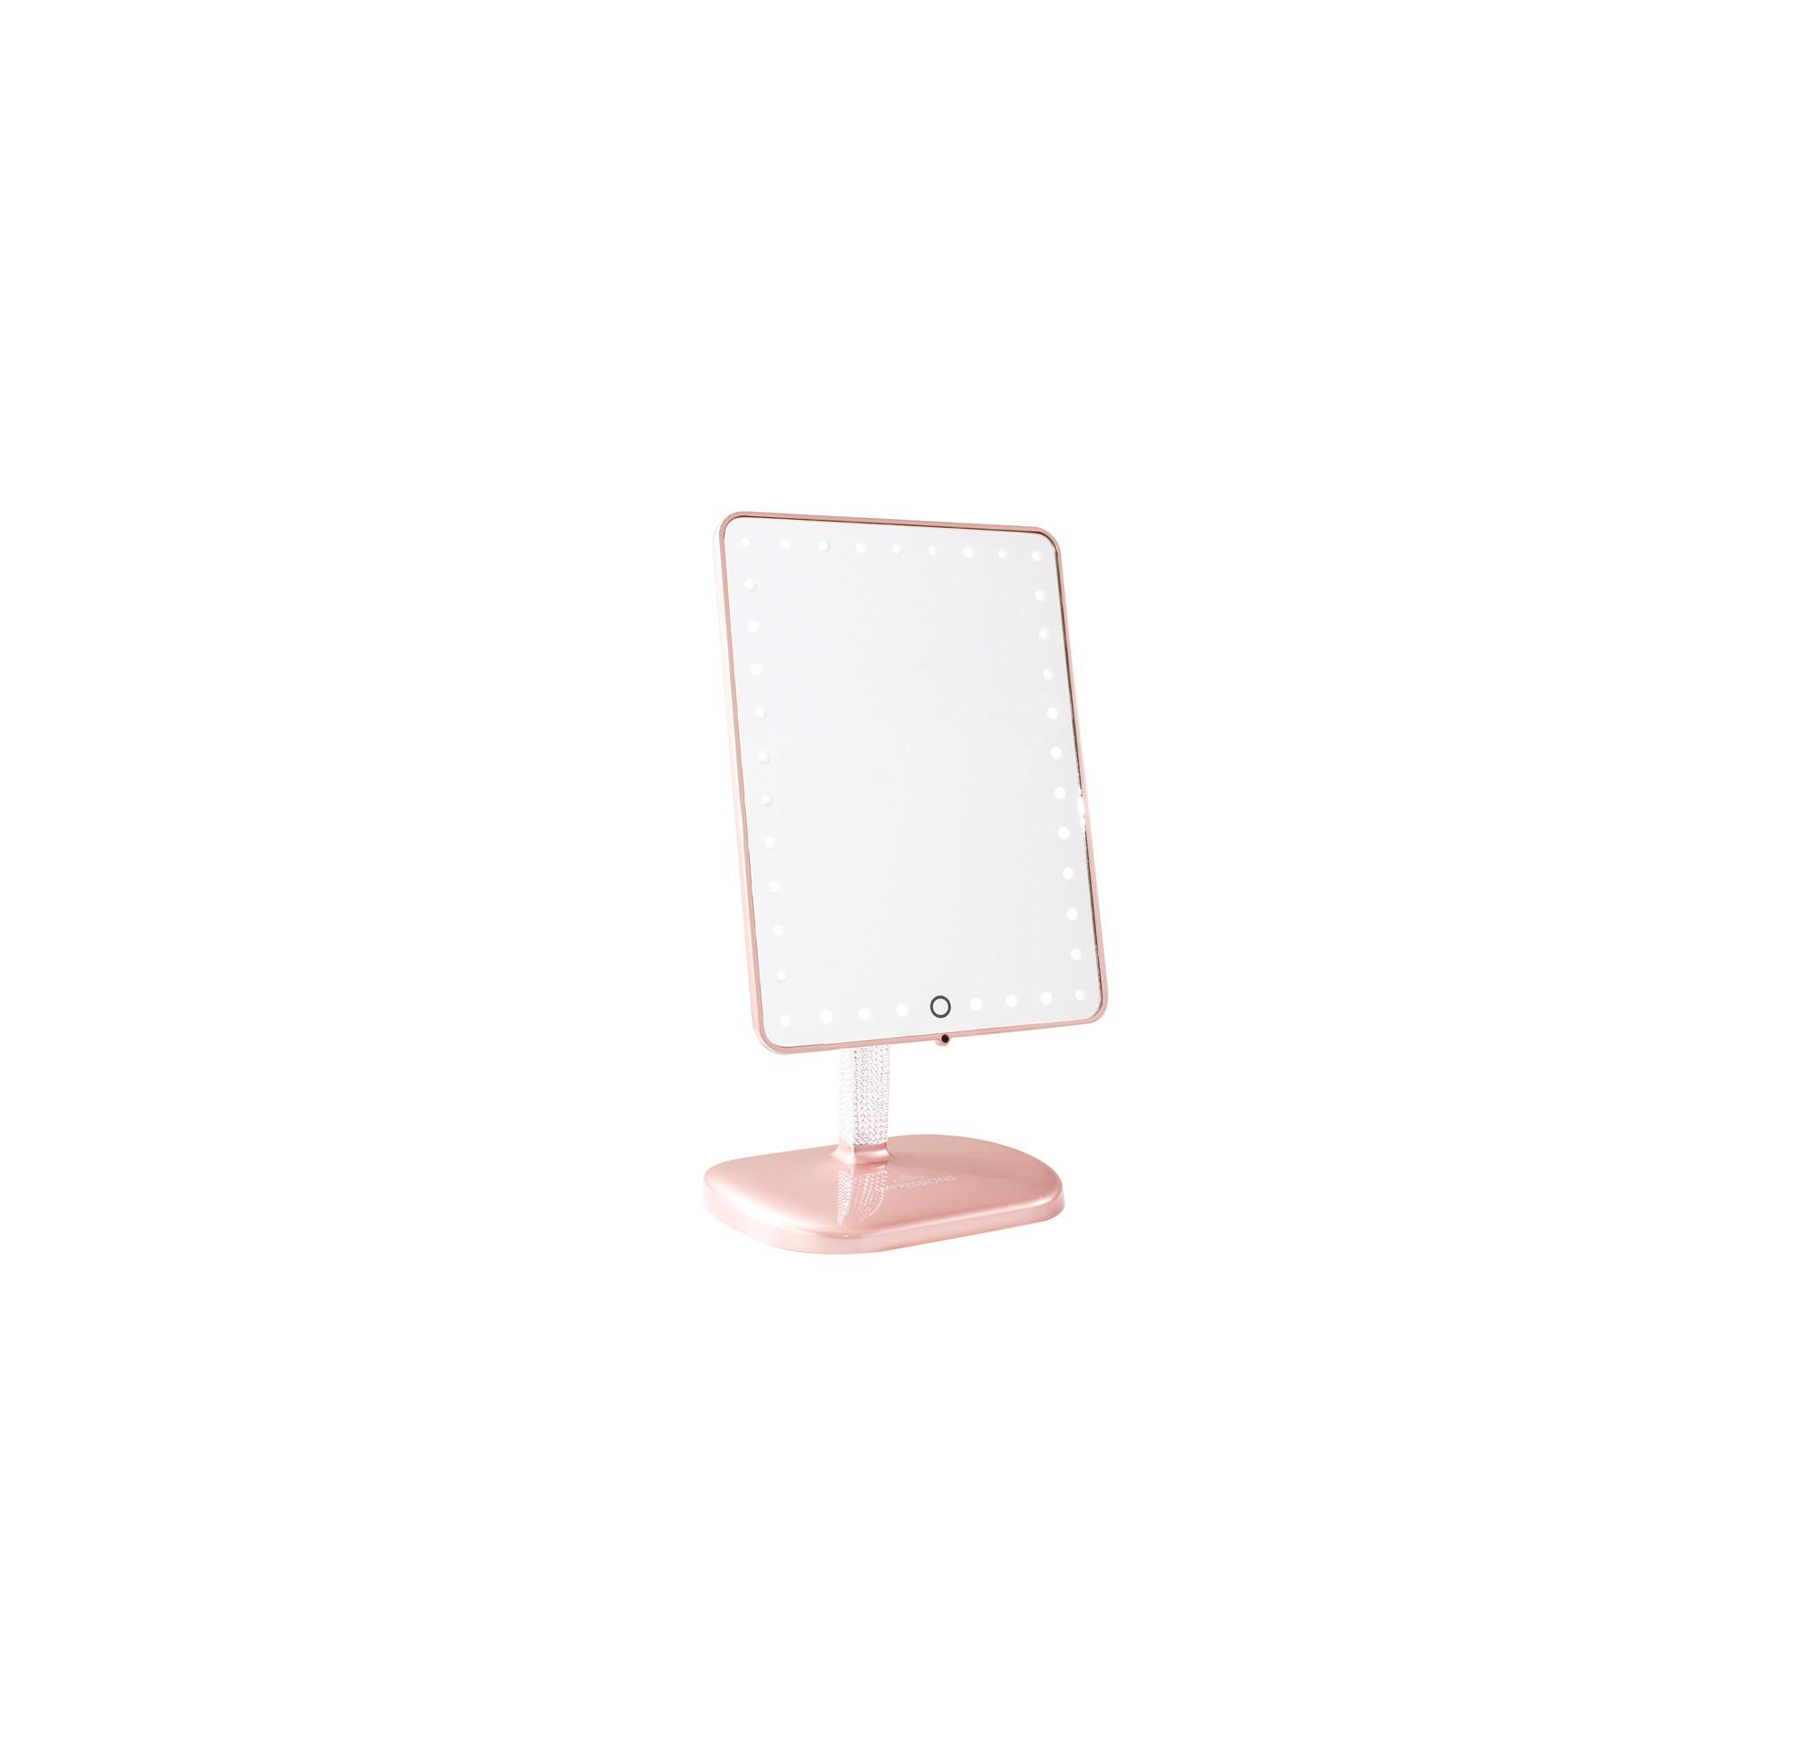 Splurge-Worthy Beauty Essentials: A LED Mirror